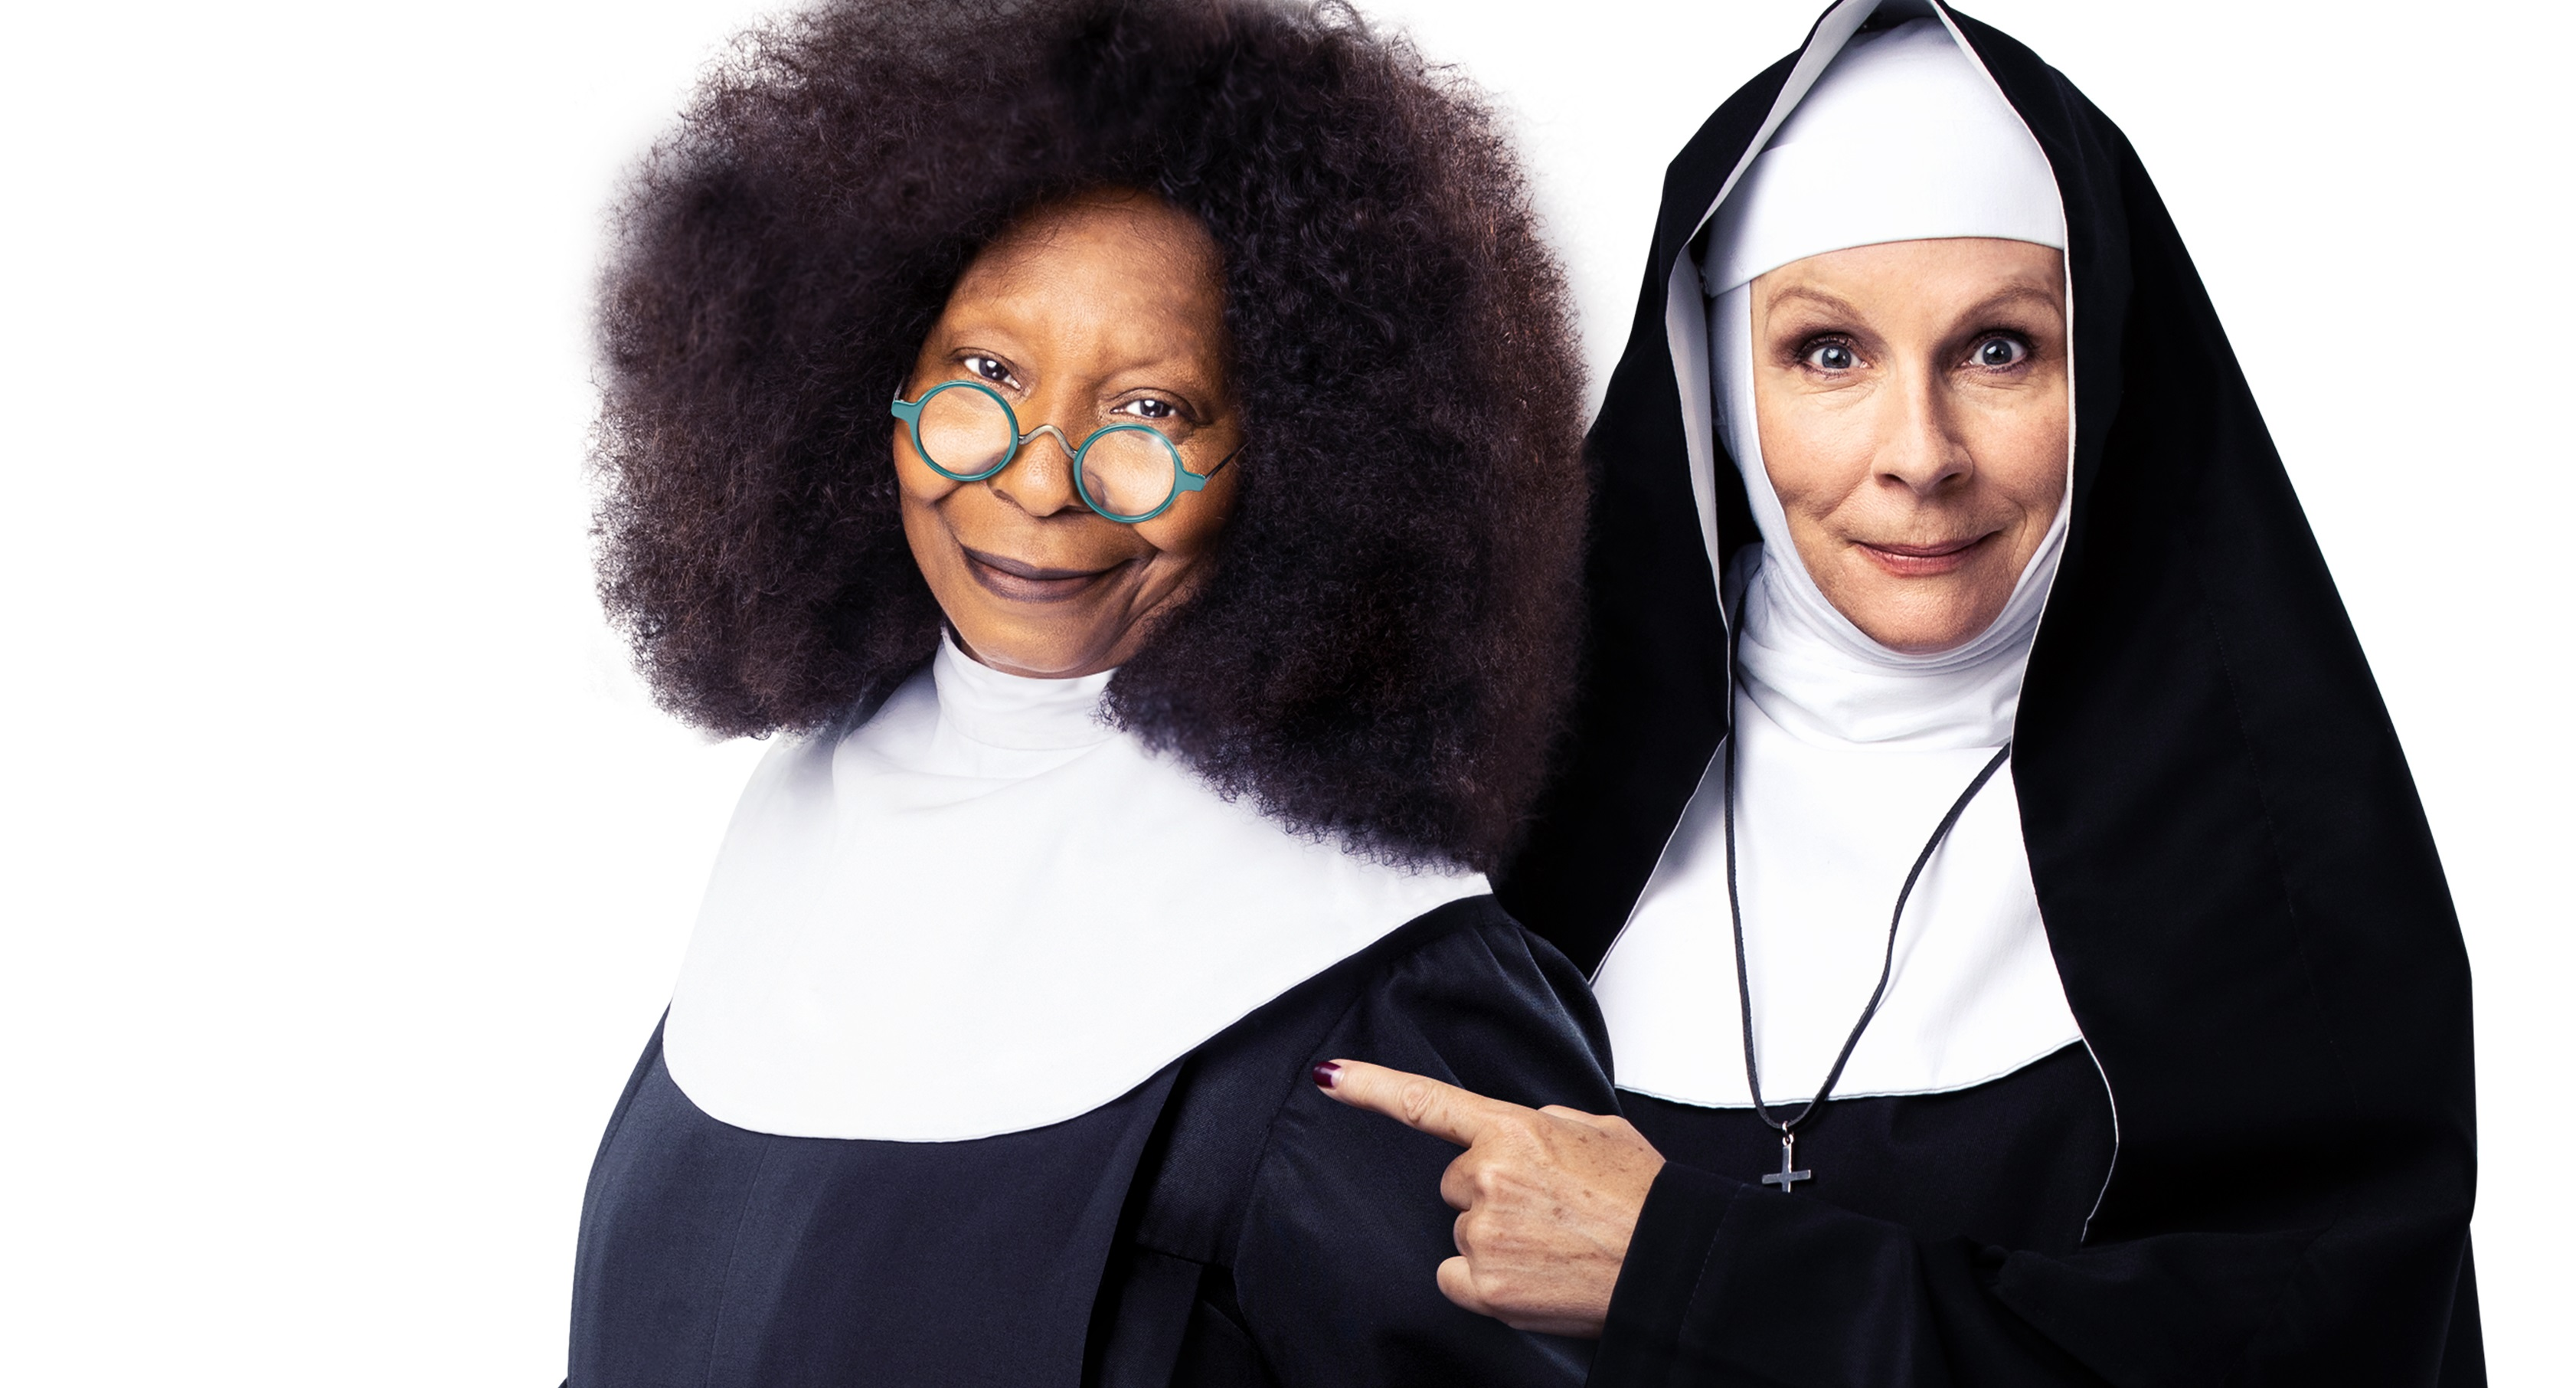 Whoopi Goldberg and Jennifer Saunders in Sister Act